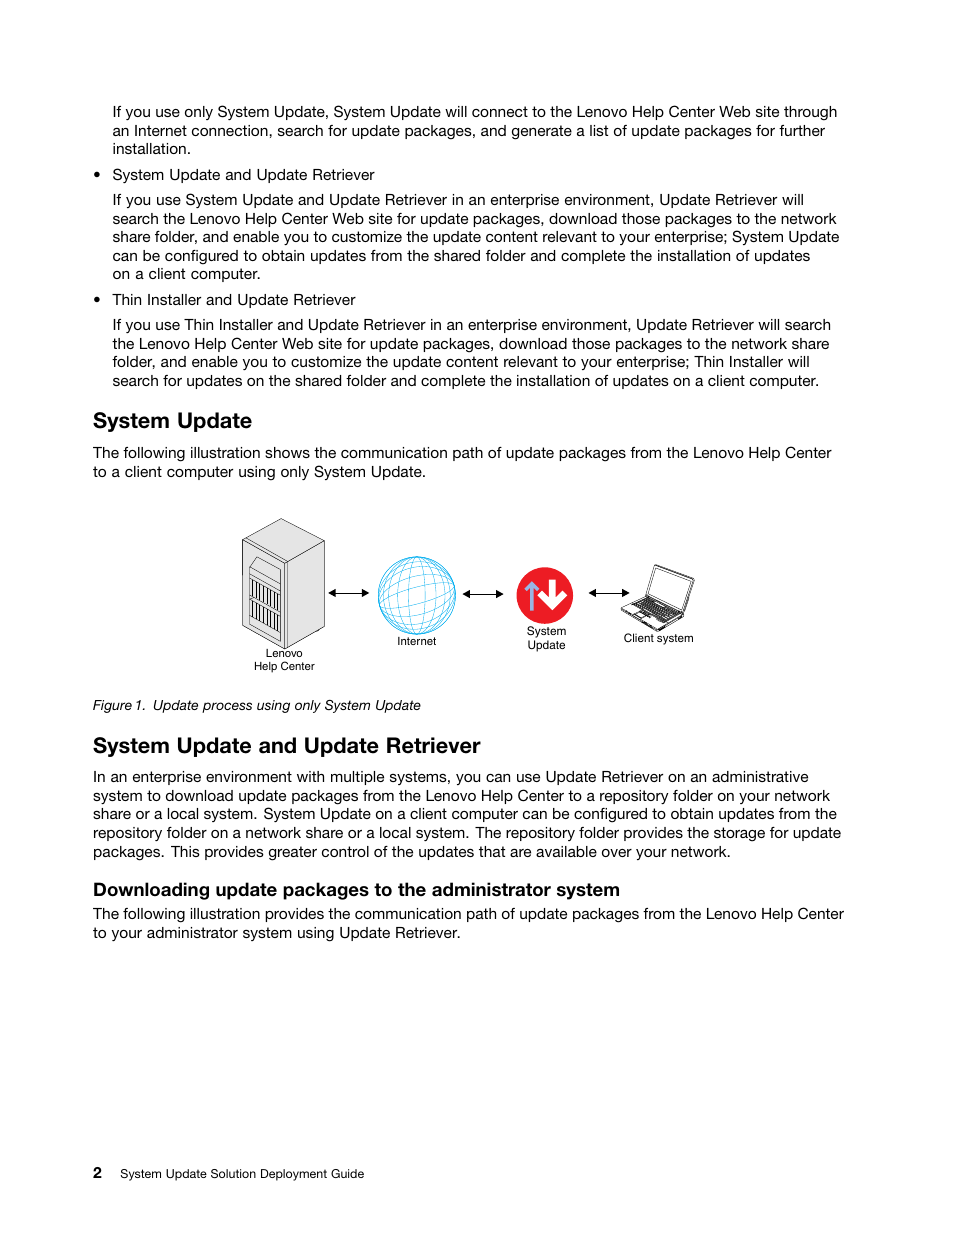 System update, System update and update retriever   Lenovo